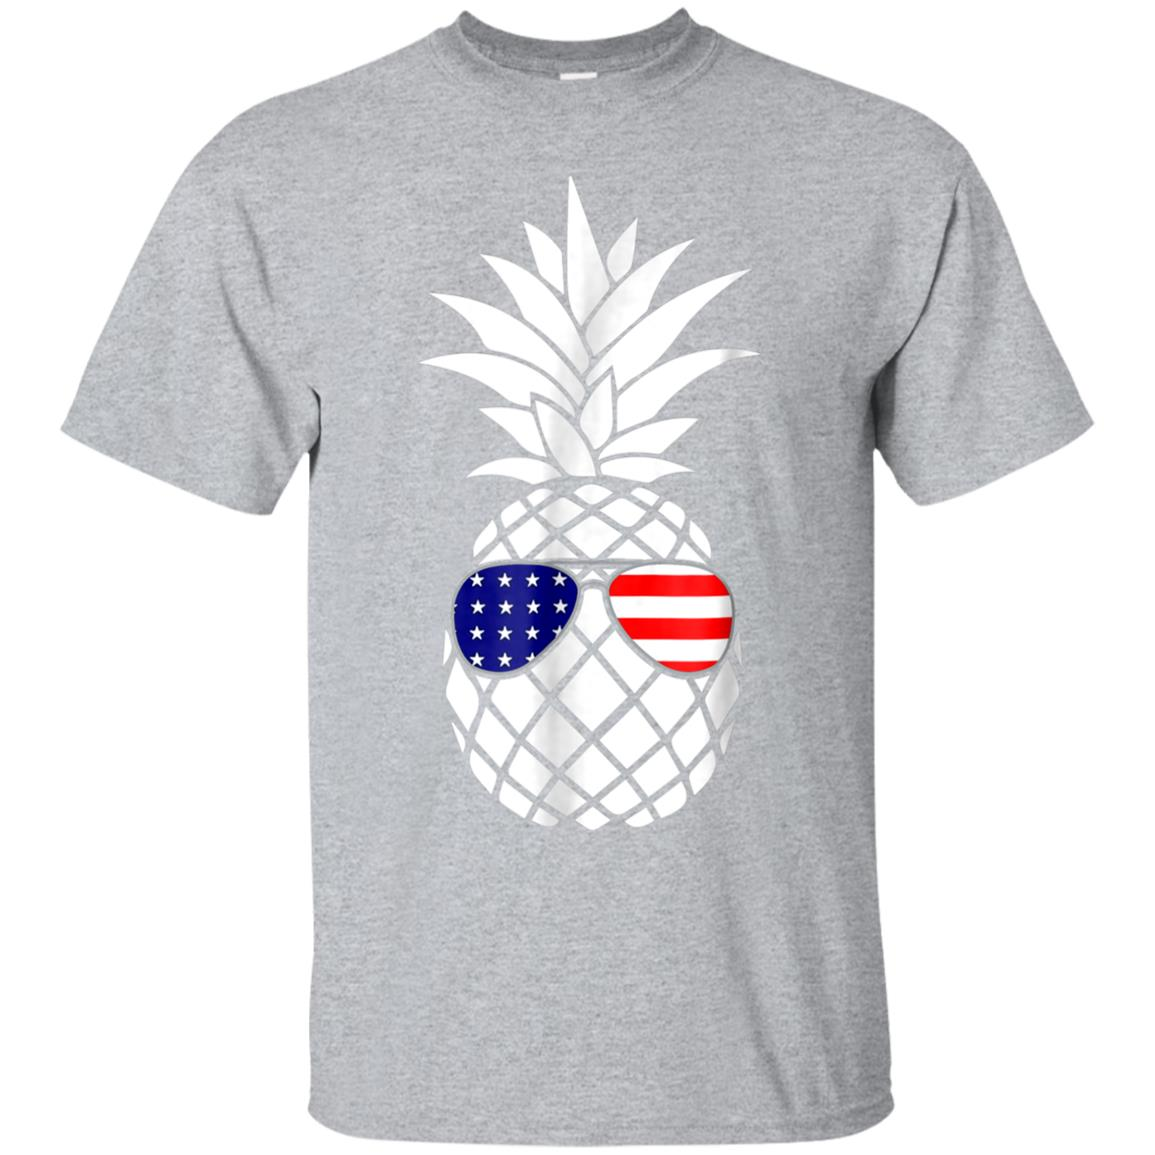 Patriotic Pineapple T-Shirt 4th July Glasses American Flag 99promocode